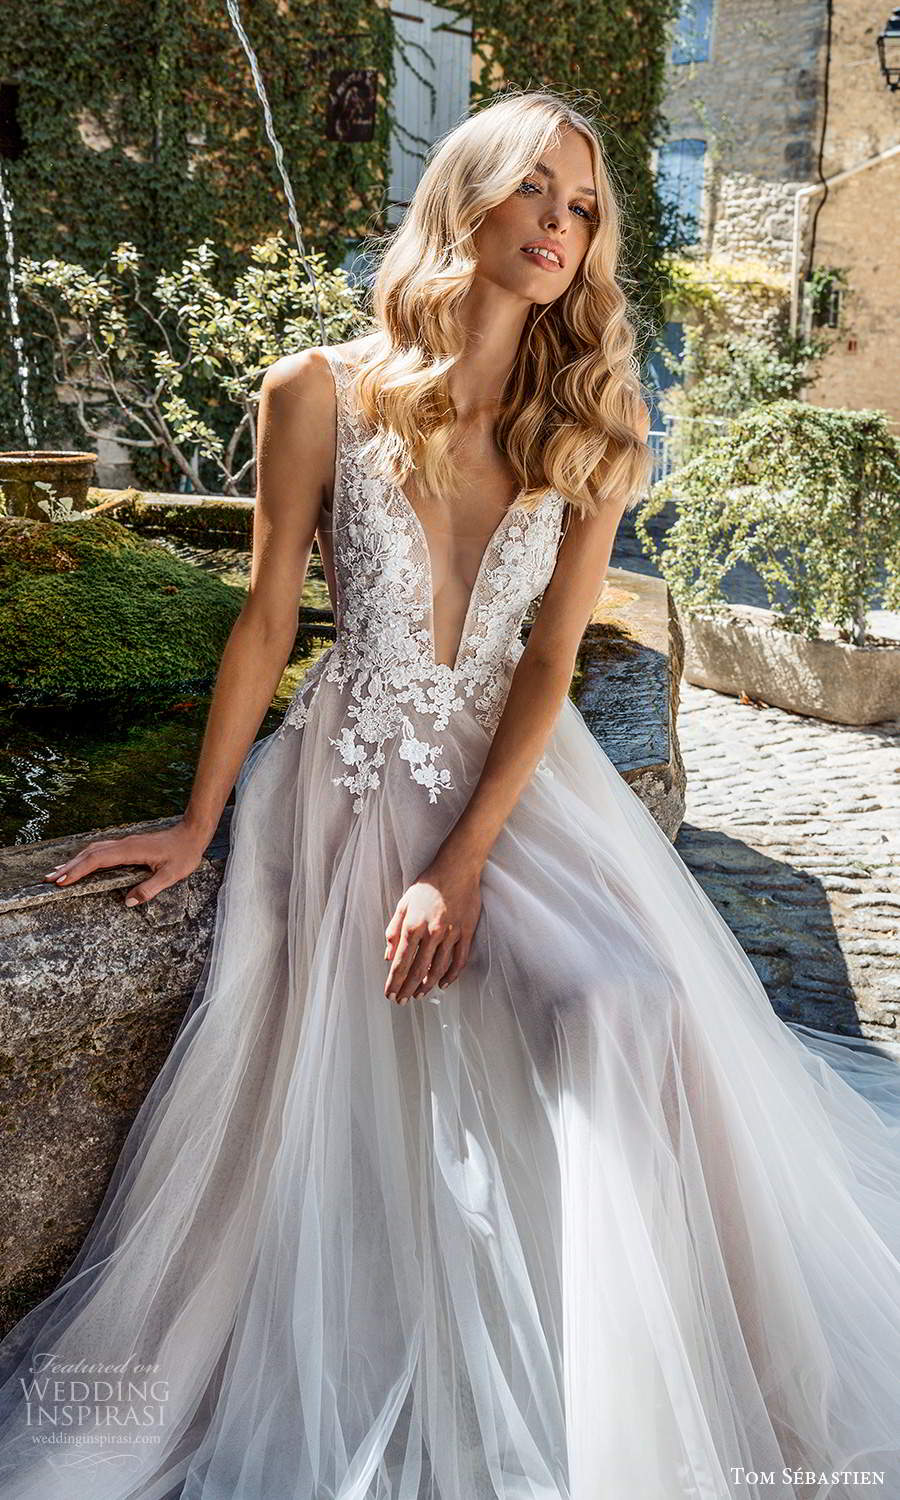 tom sebastien 2021 bridal provence sleeveless straps plunging v neckline side cutout embellished lace bodice a line ball gown wedding dress chapel train v back (9) zv